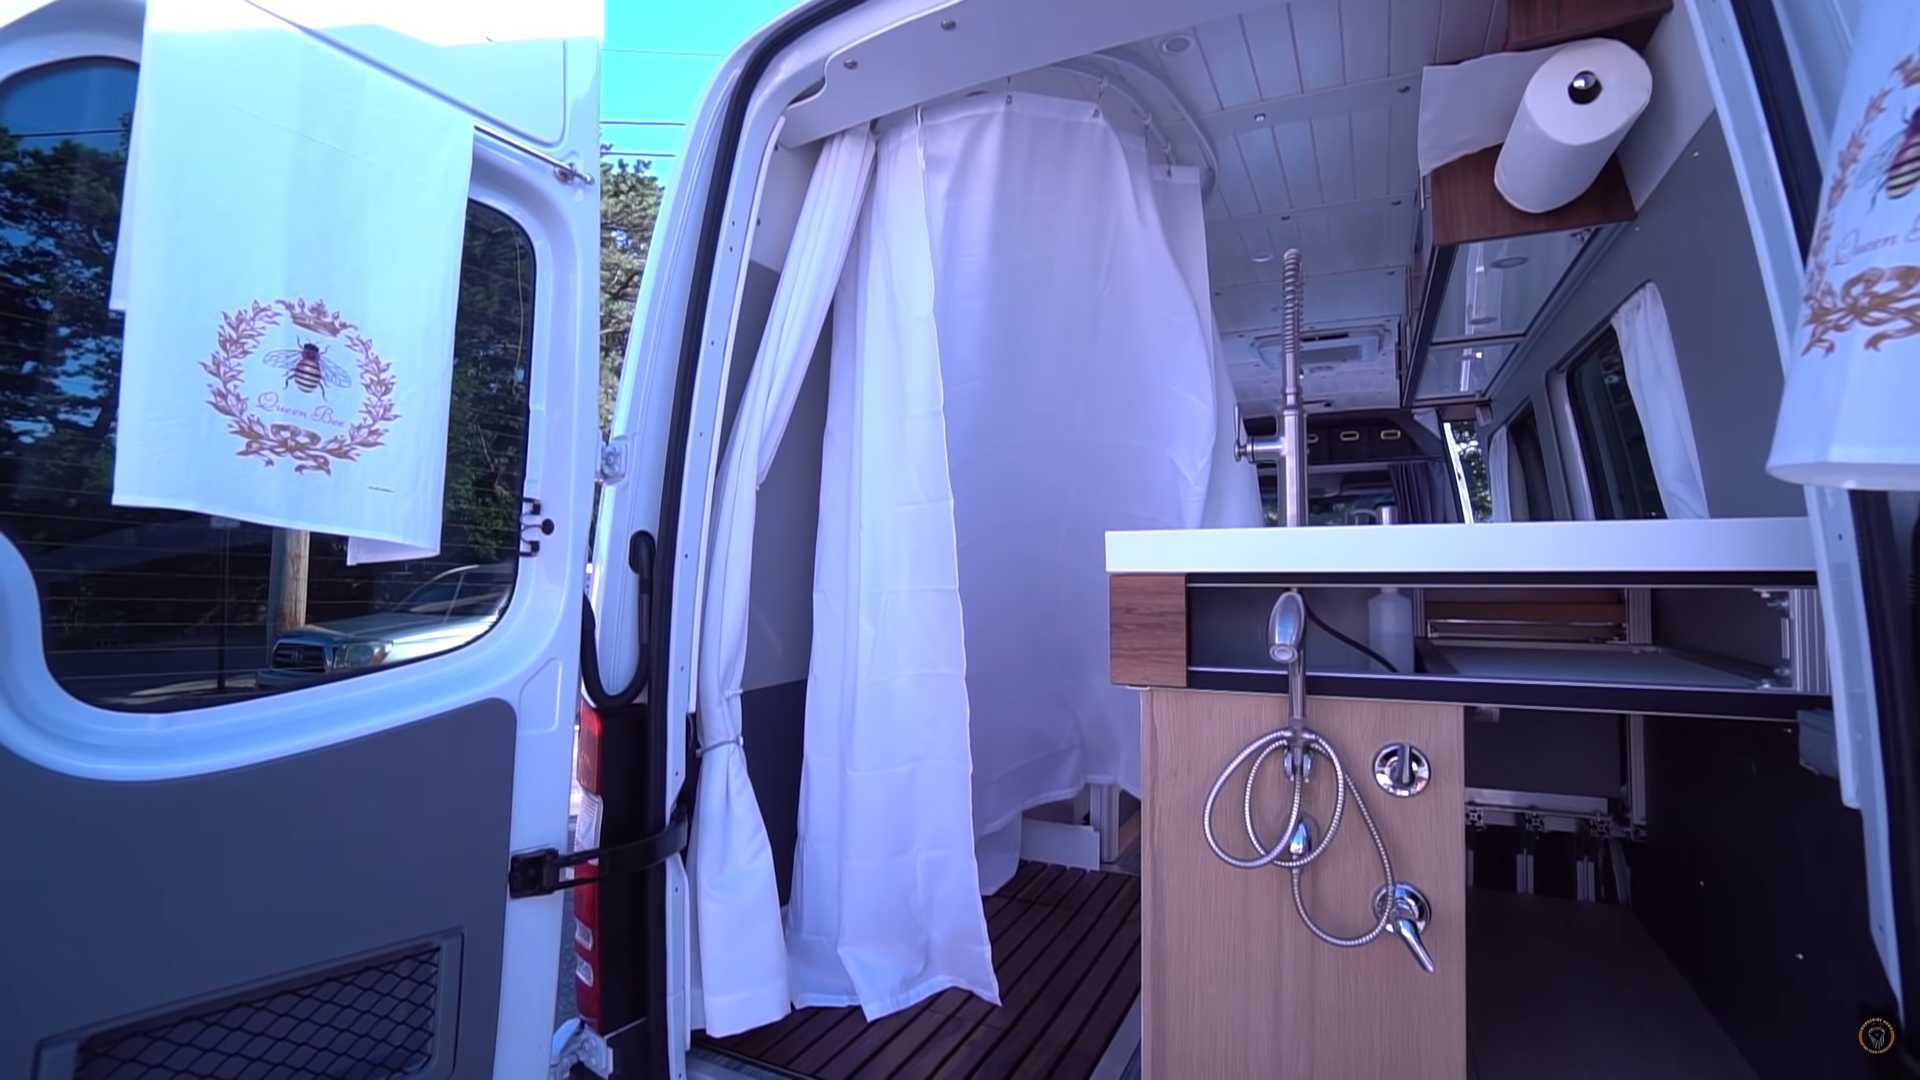 60 Year Old Man Builds Incredible Camper Van With Giant Shower